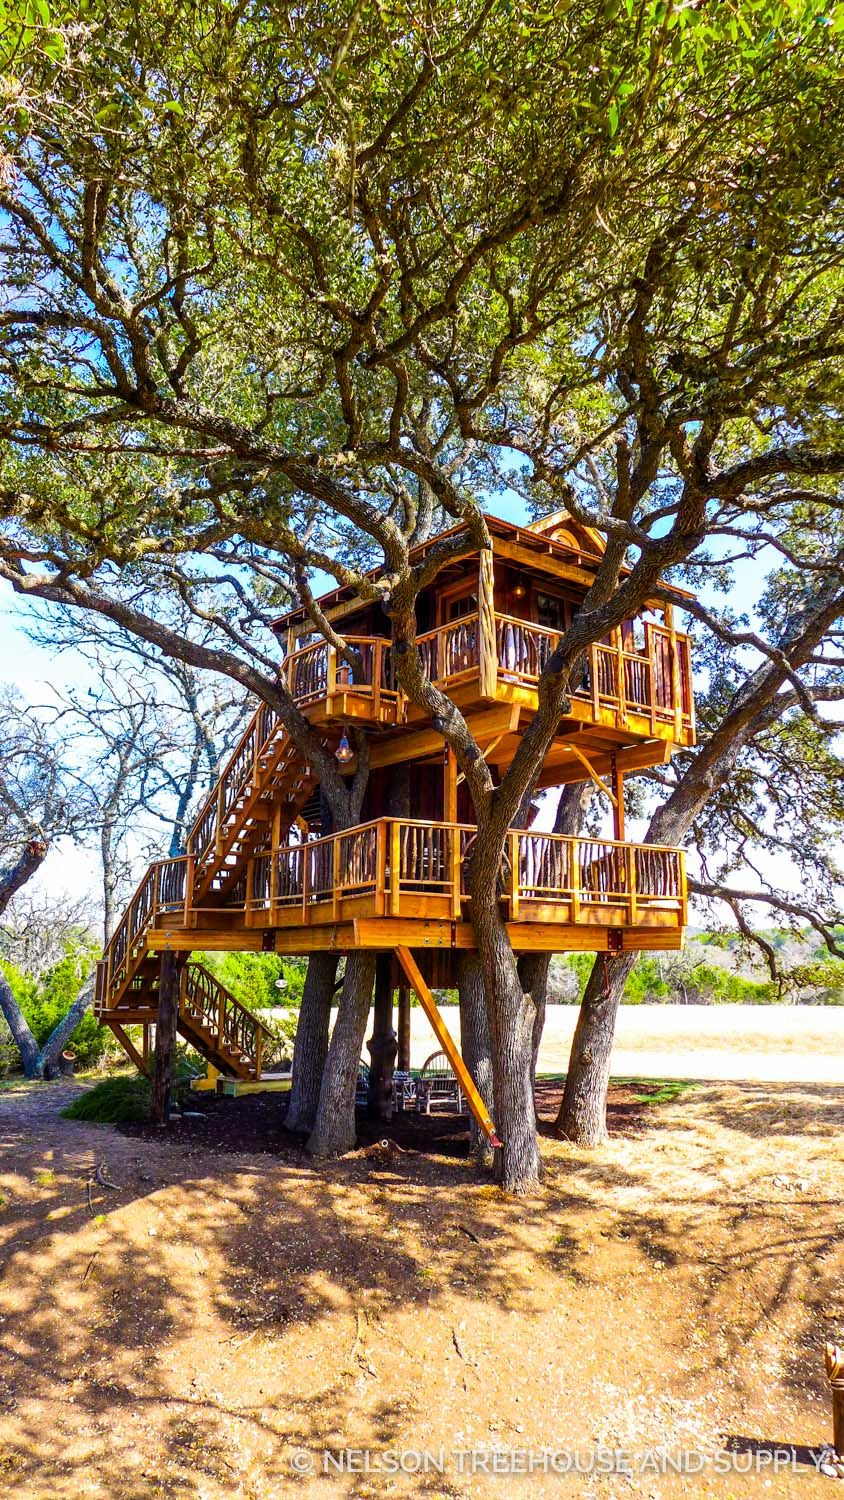 tree house decorating ideas. Hill-country-hideout Tree House Decorating Ideas U